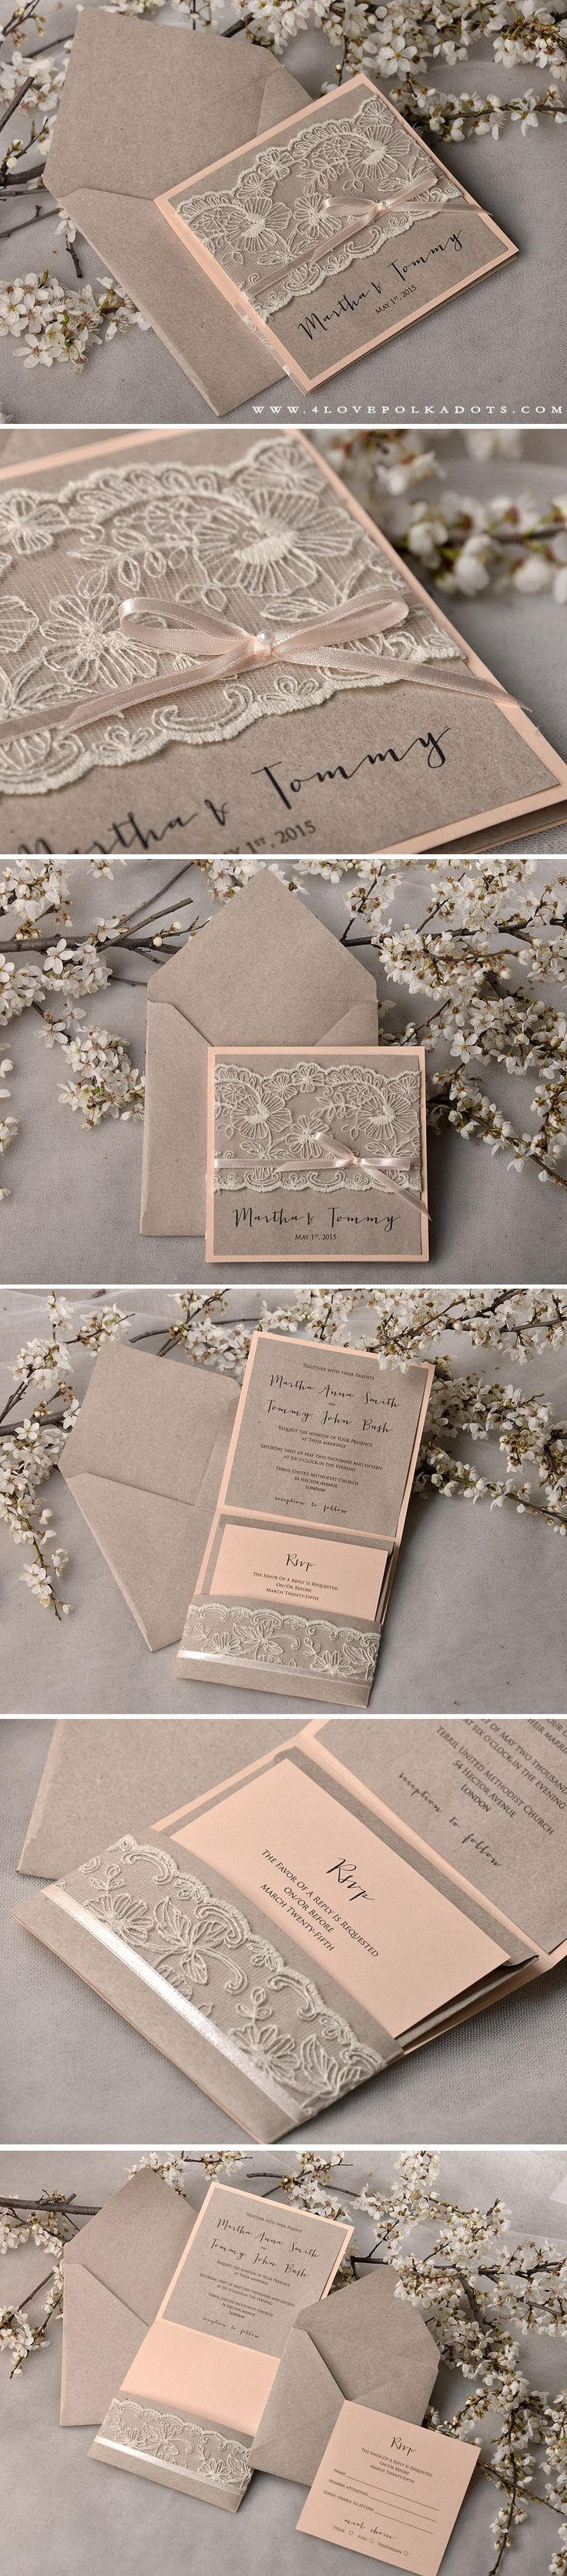 11 best wedding cards images on pinterest invitations marriage peach eco lace wedding invitations handmade summerwedding weddingideas solutioingenieria Image collections